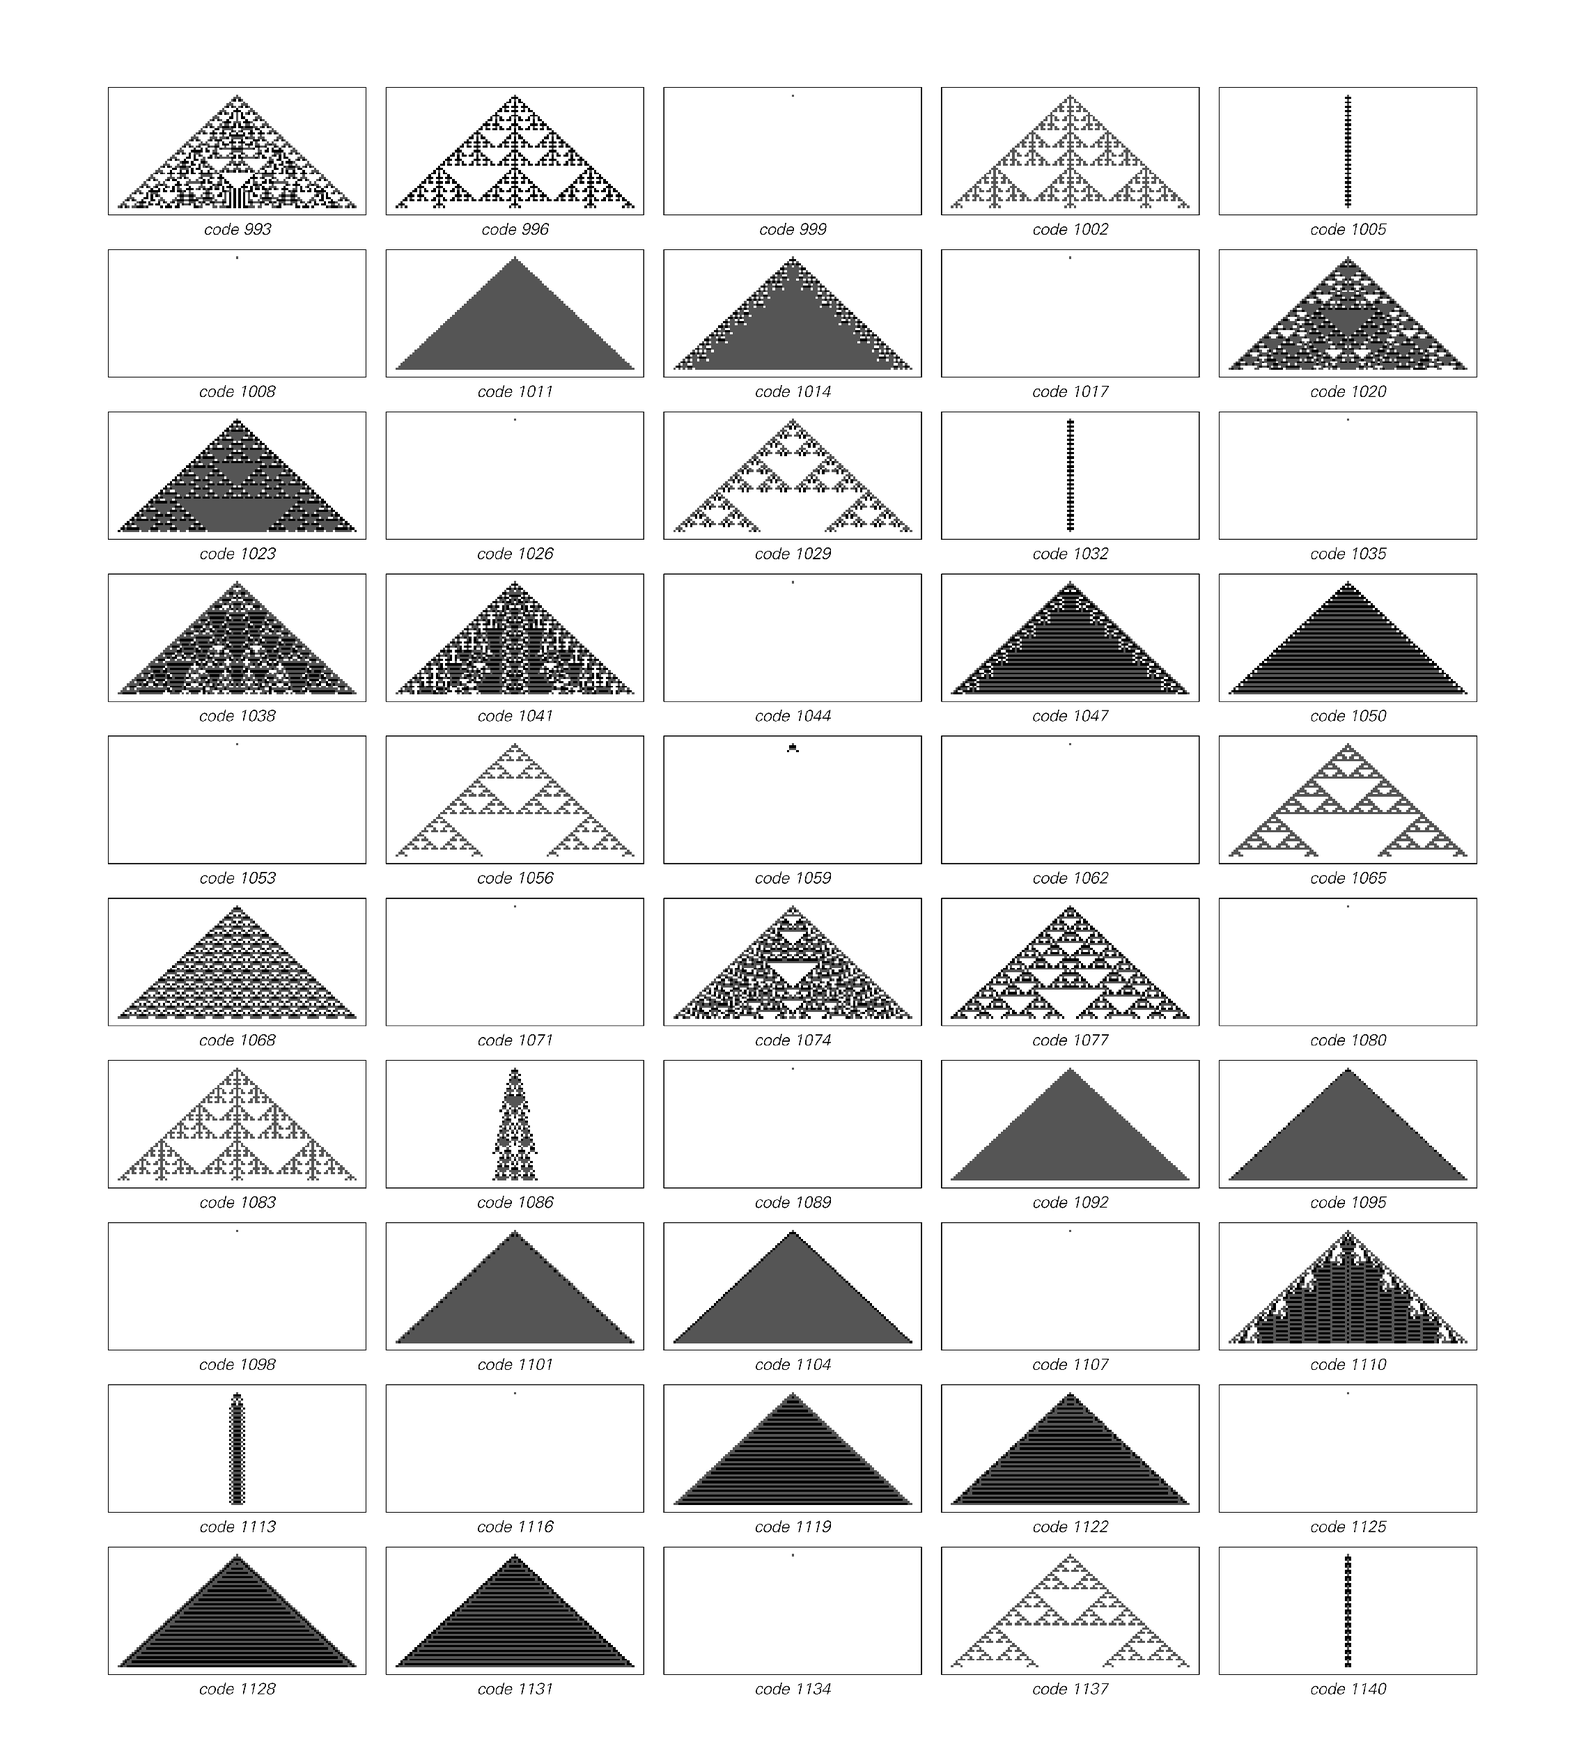 Sequence of totalistic cellular automata